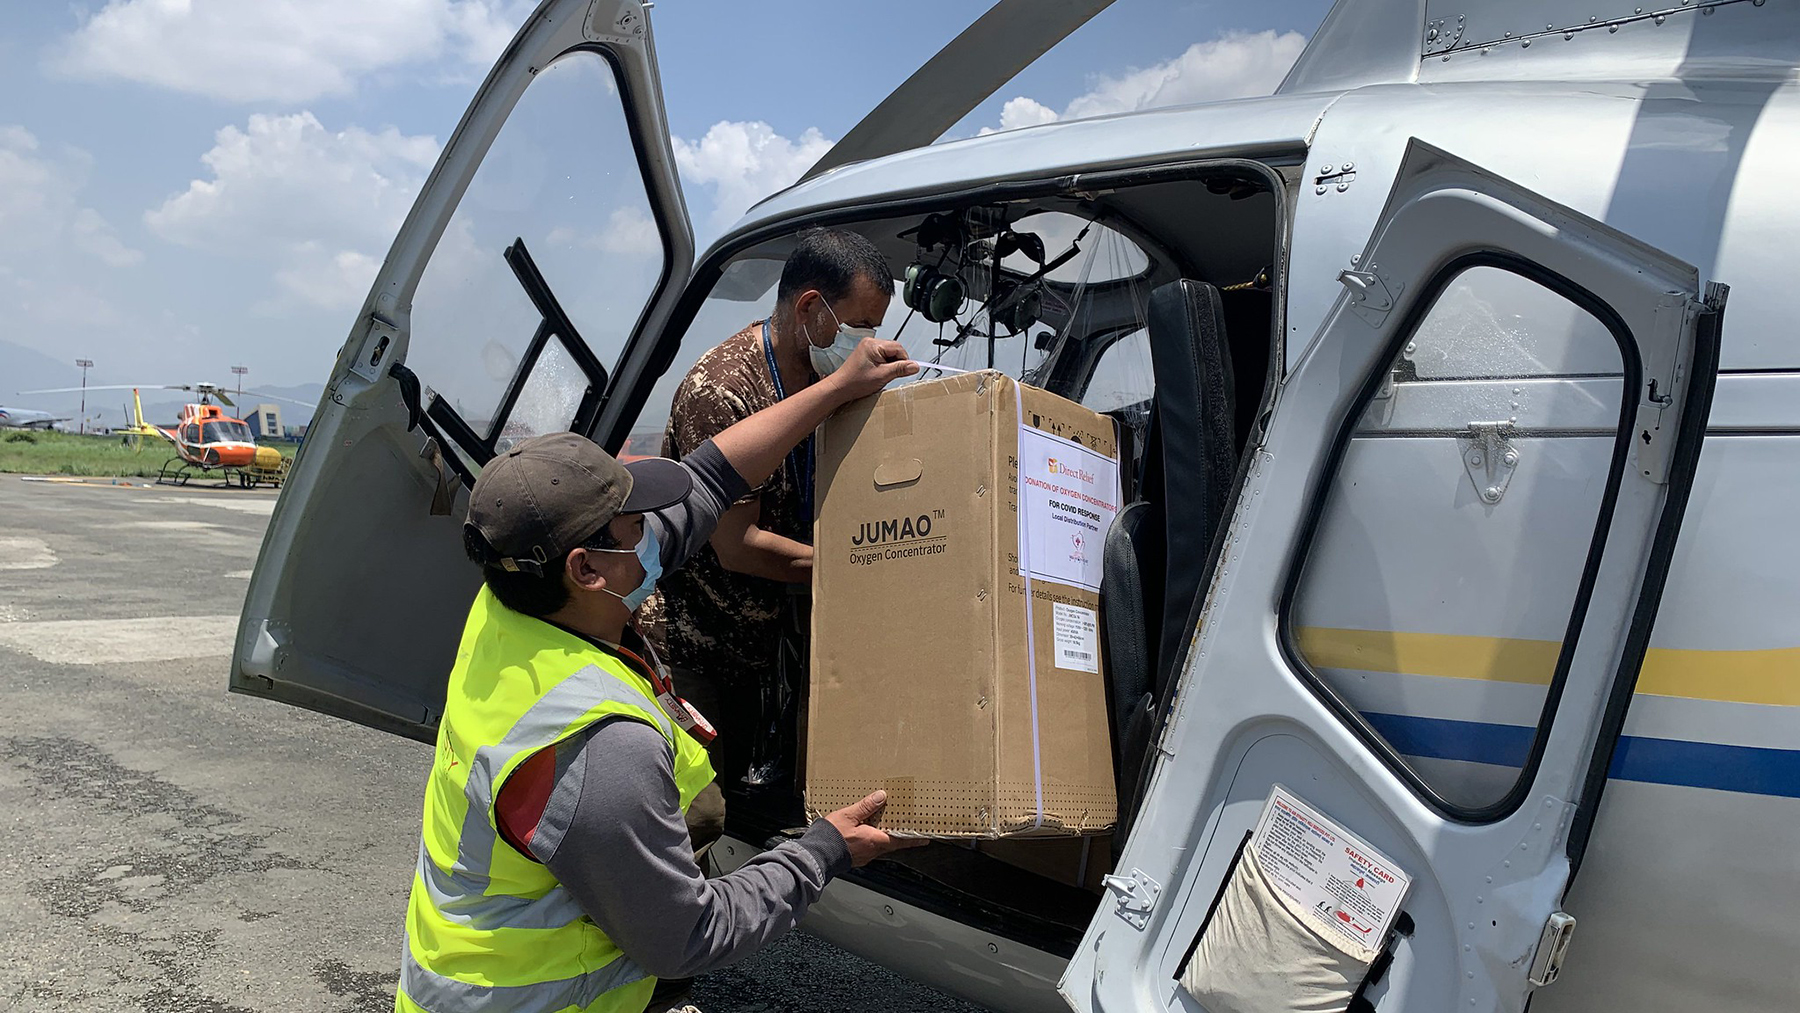 Oxygen concentrators from Direct Relief are loaded into helicopters for delivery to remote communities in the Himalayas. The concentrators went to NGO Mountain Heart Nepal, which support medical care in rural communities. (Mountain Heart Nepal photo)